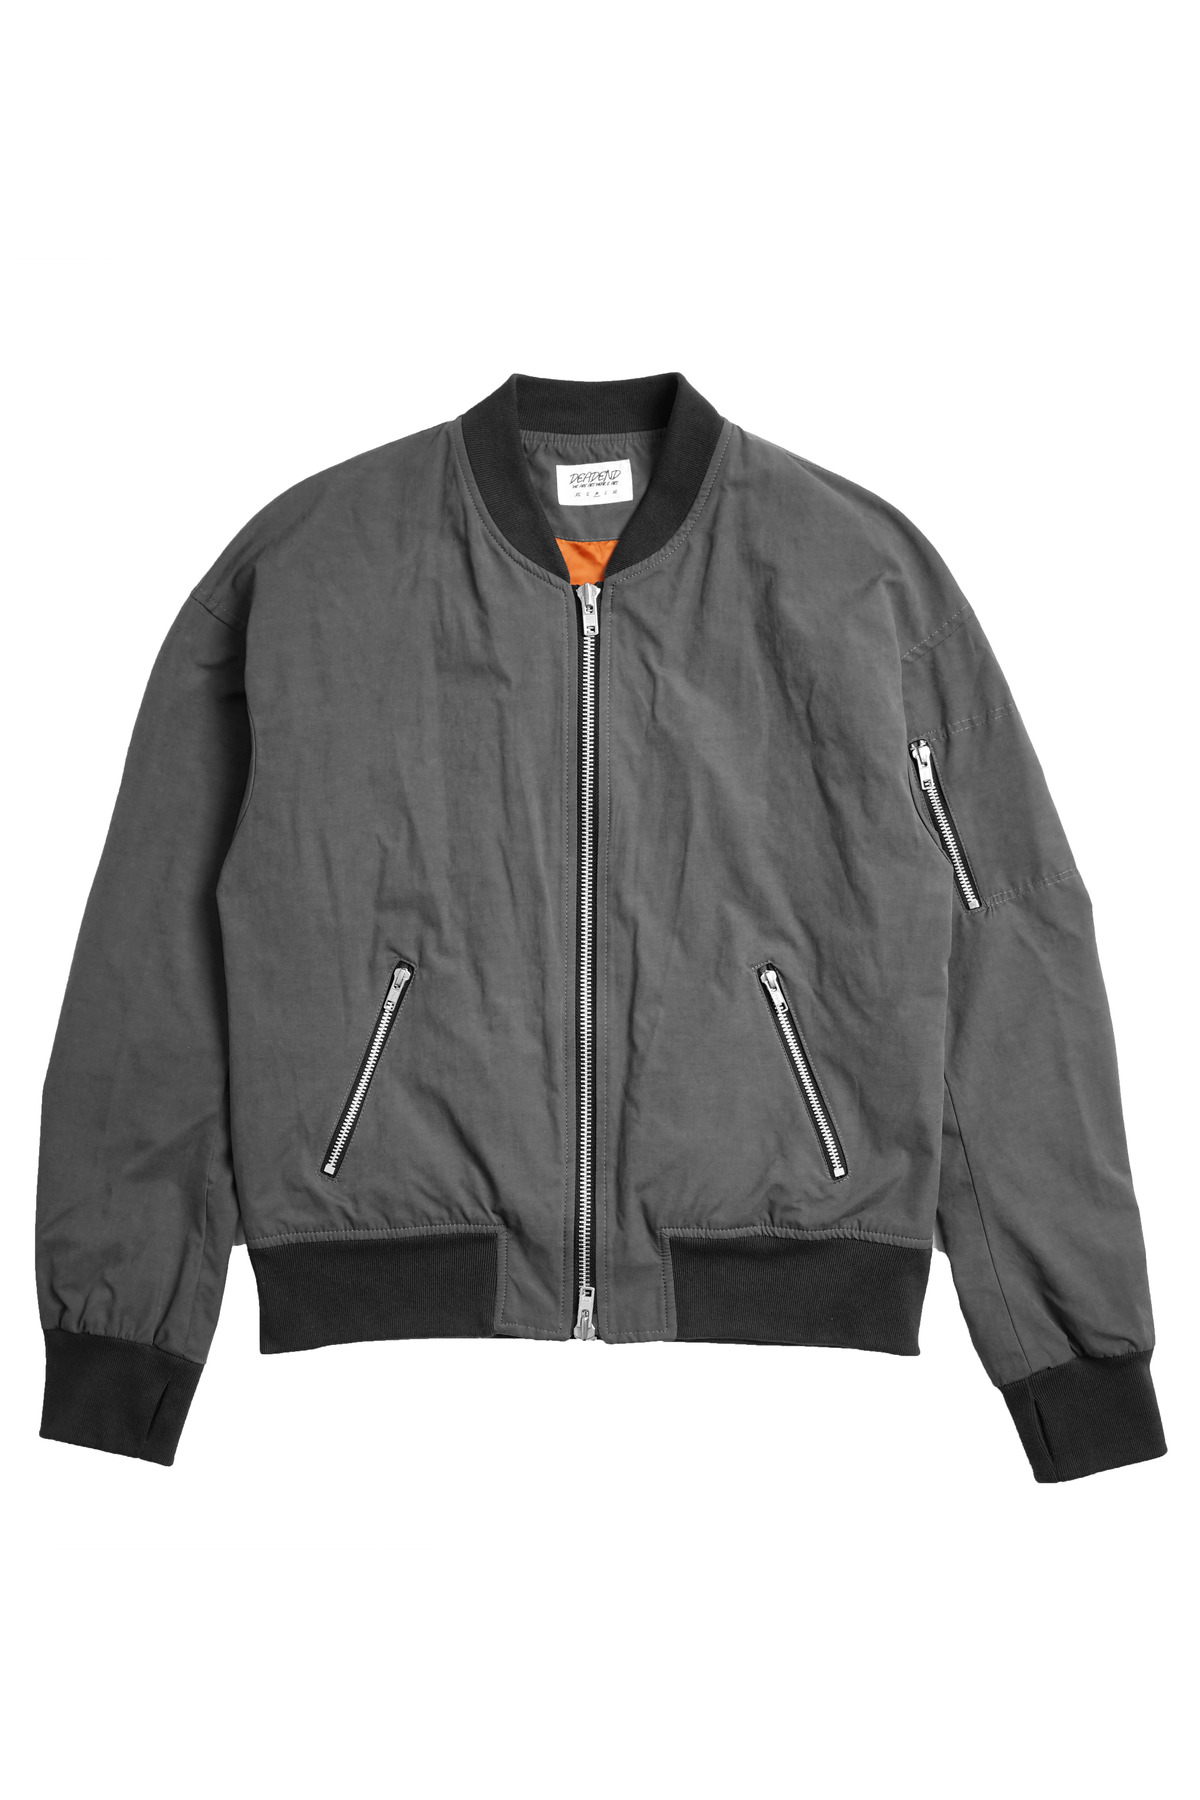 GREY SET IN RAGLAN FLIGHT JACKET